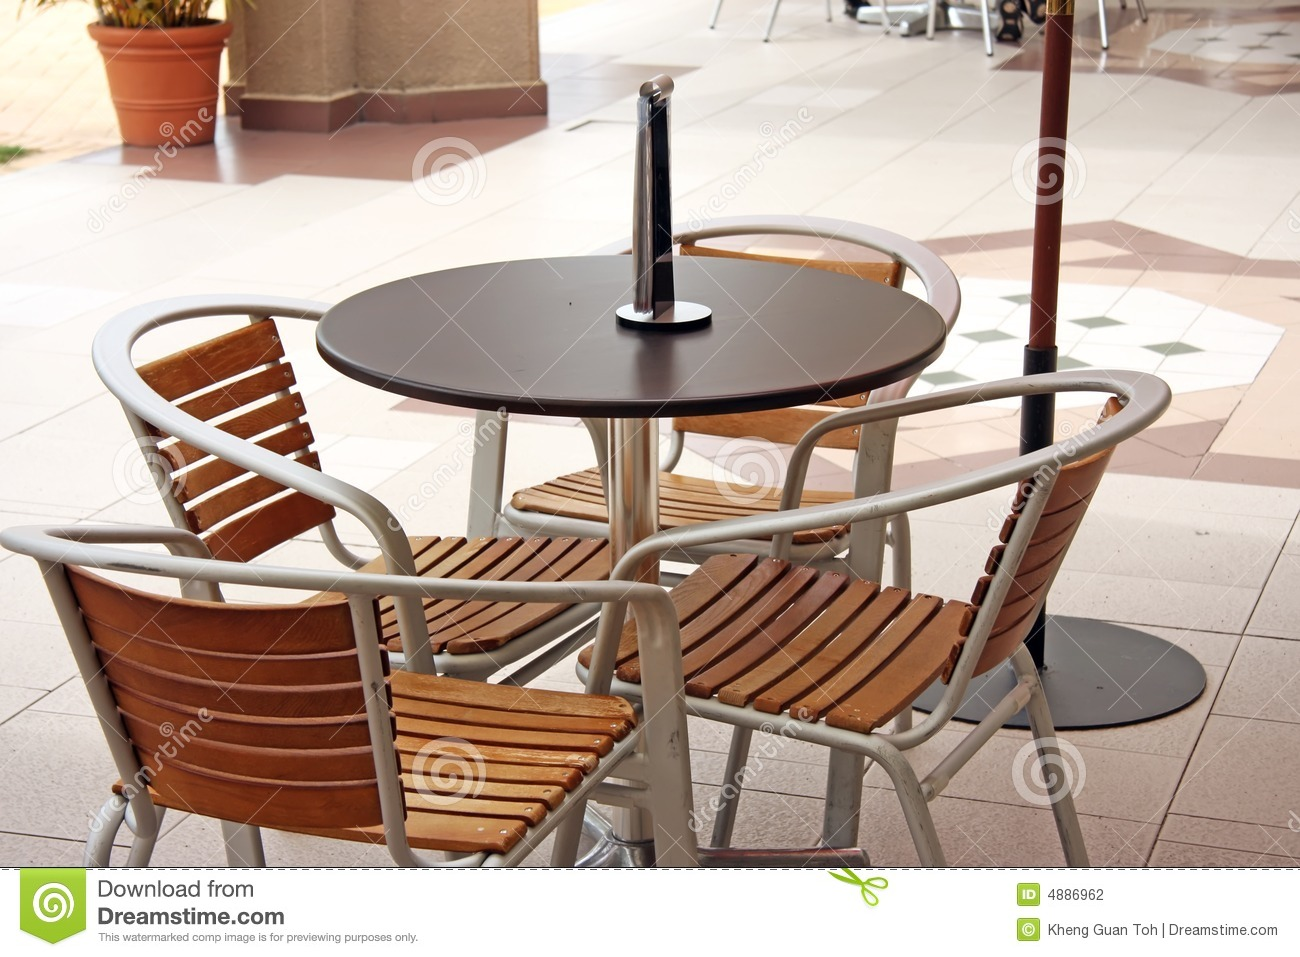 Outdoor Cafe Furniture Stock Photography Image 4886962 : outdoor cafe furniture 4886962 from dreamstime.com size 1300 x 957 jpeg 279kB